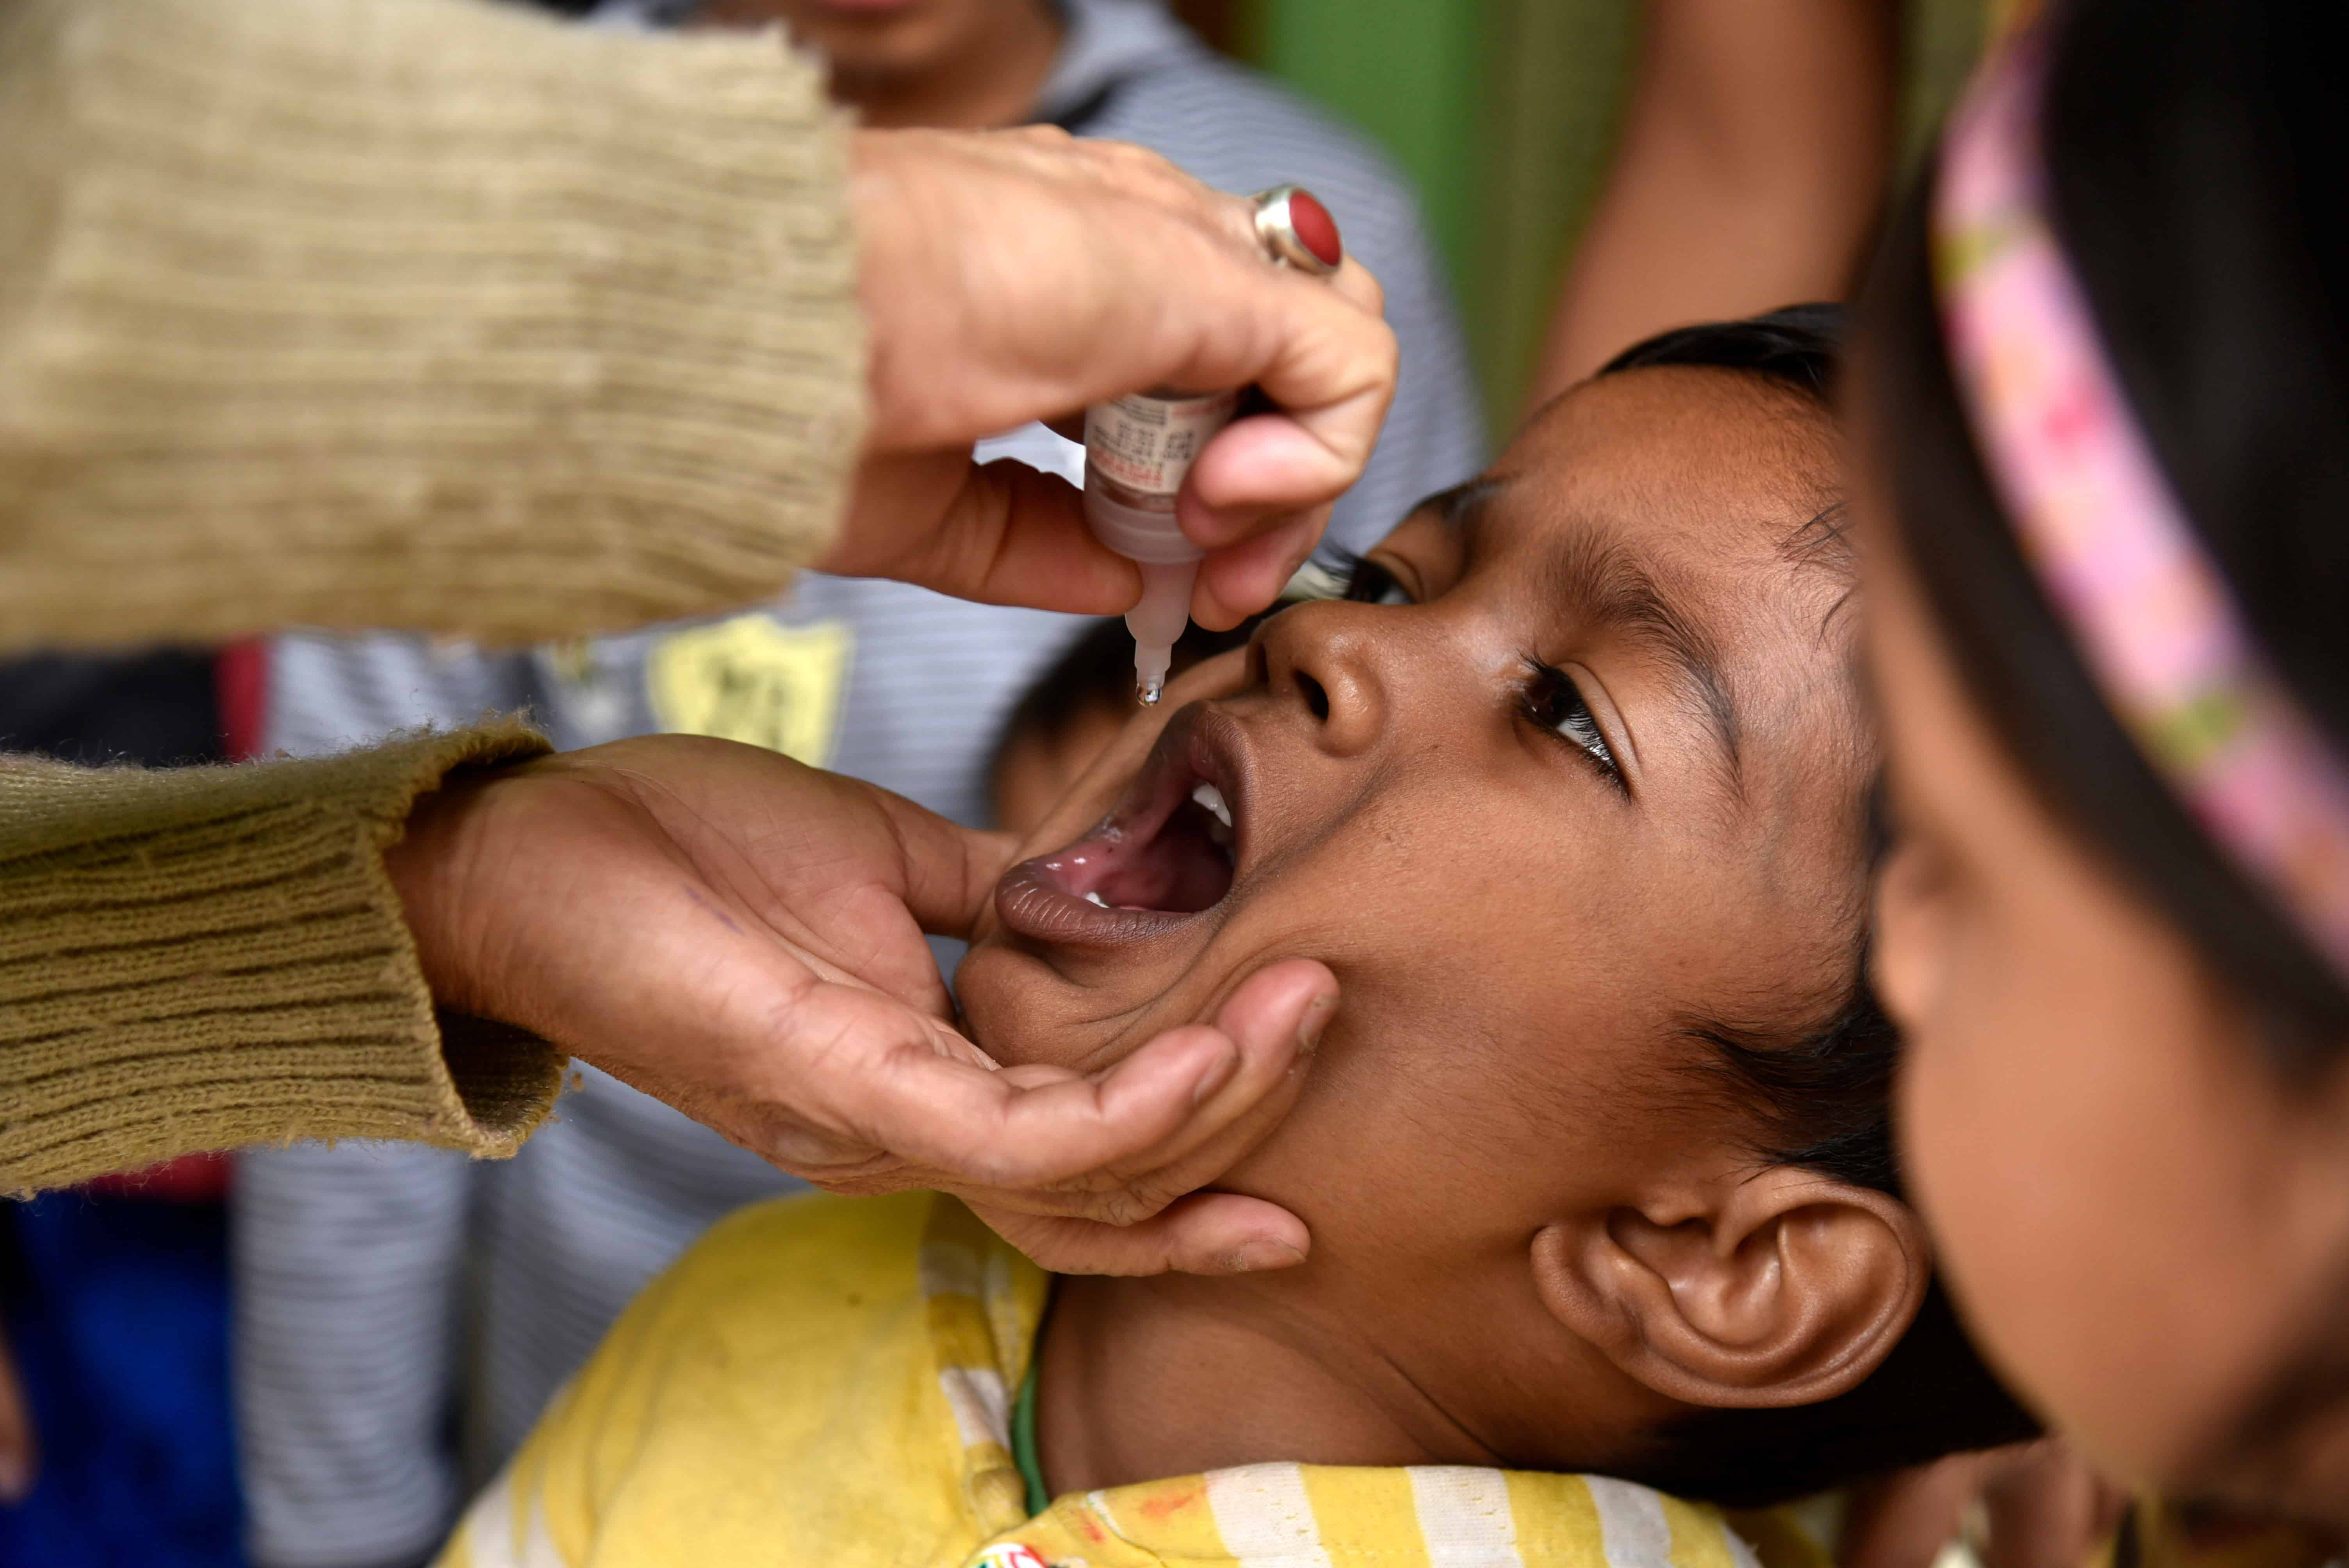 Variation in Cost and Performance of Routine Immunisation Service Delivery in India